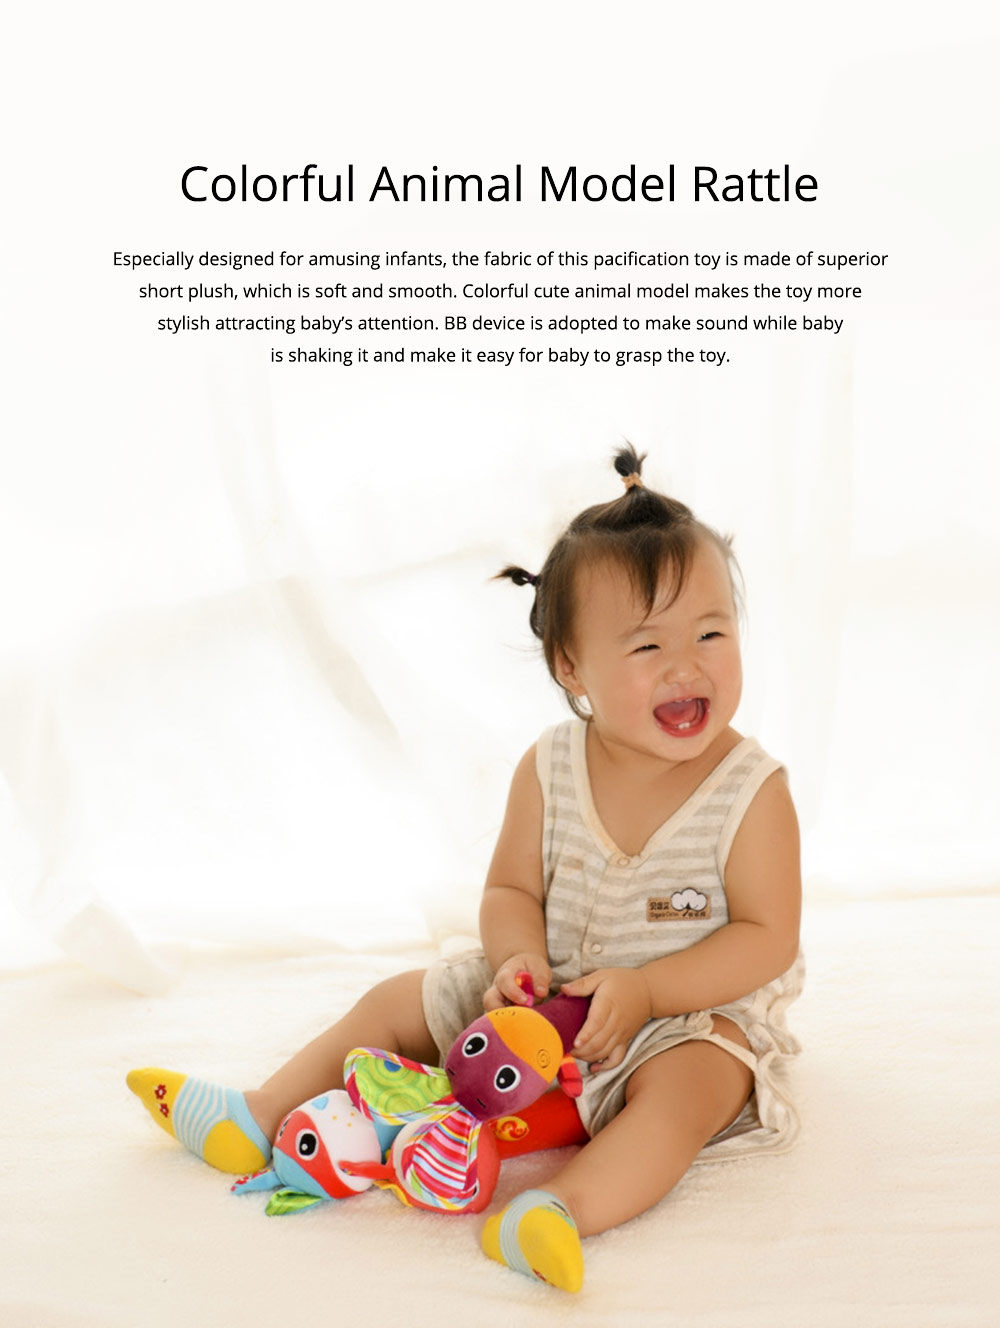 Colorful Cute Animal Model Rattle Pacification Toy for Infants, Ultrasoft Hand Grab Toy BB Stick Baby Early Education Toy 0